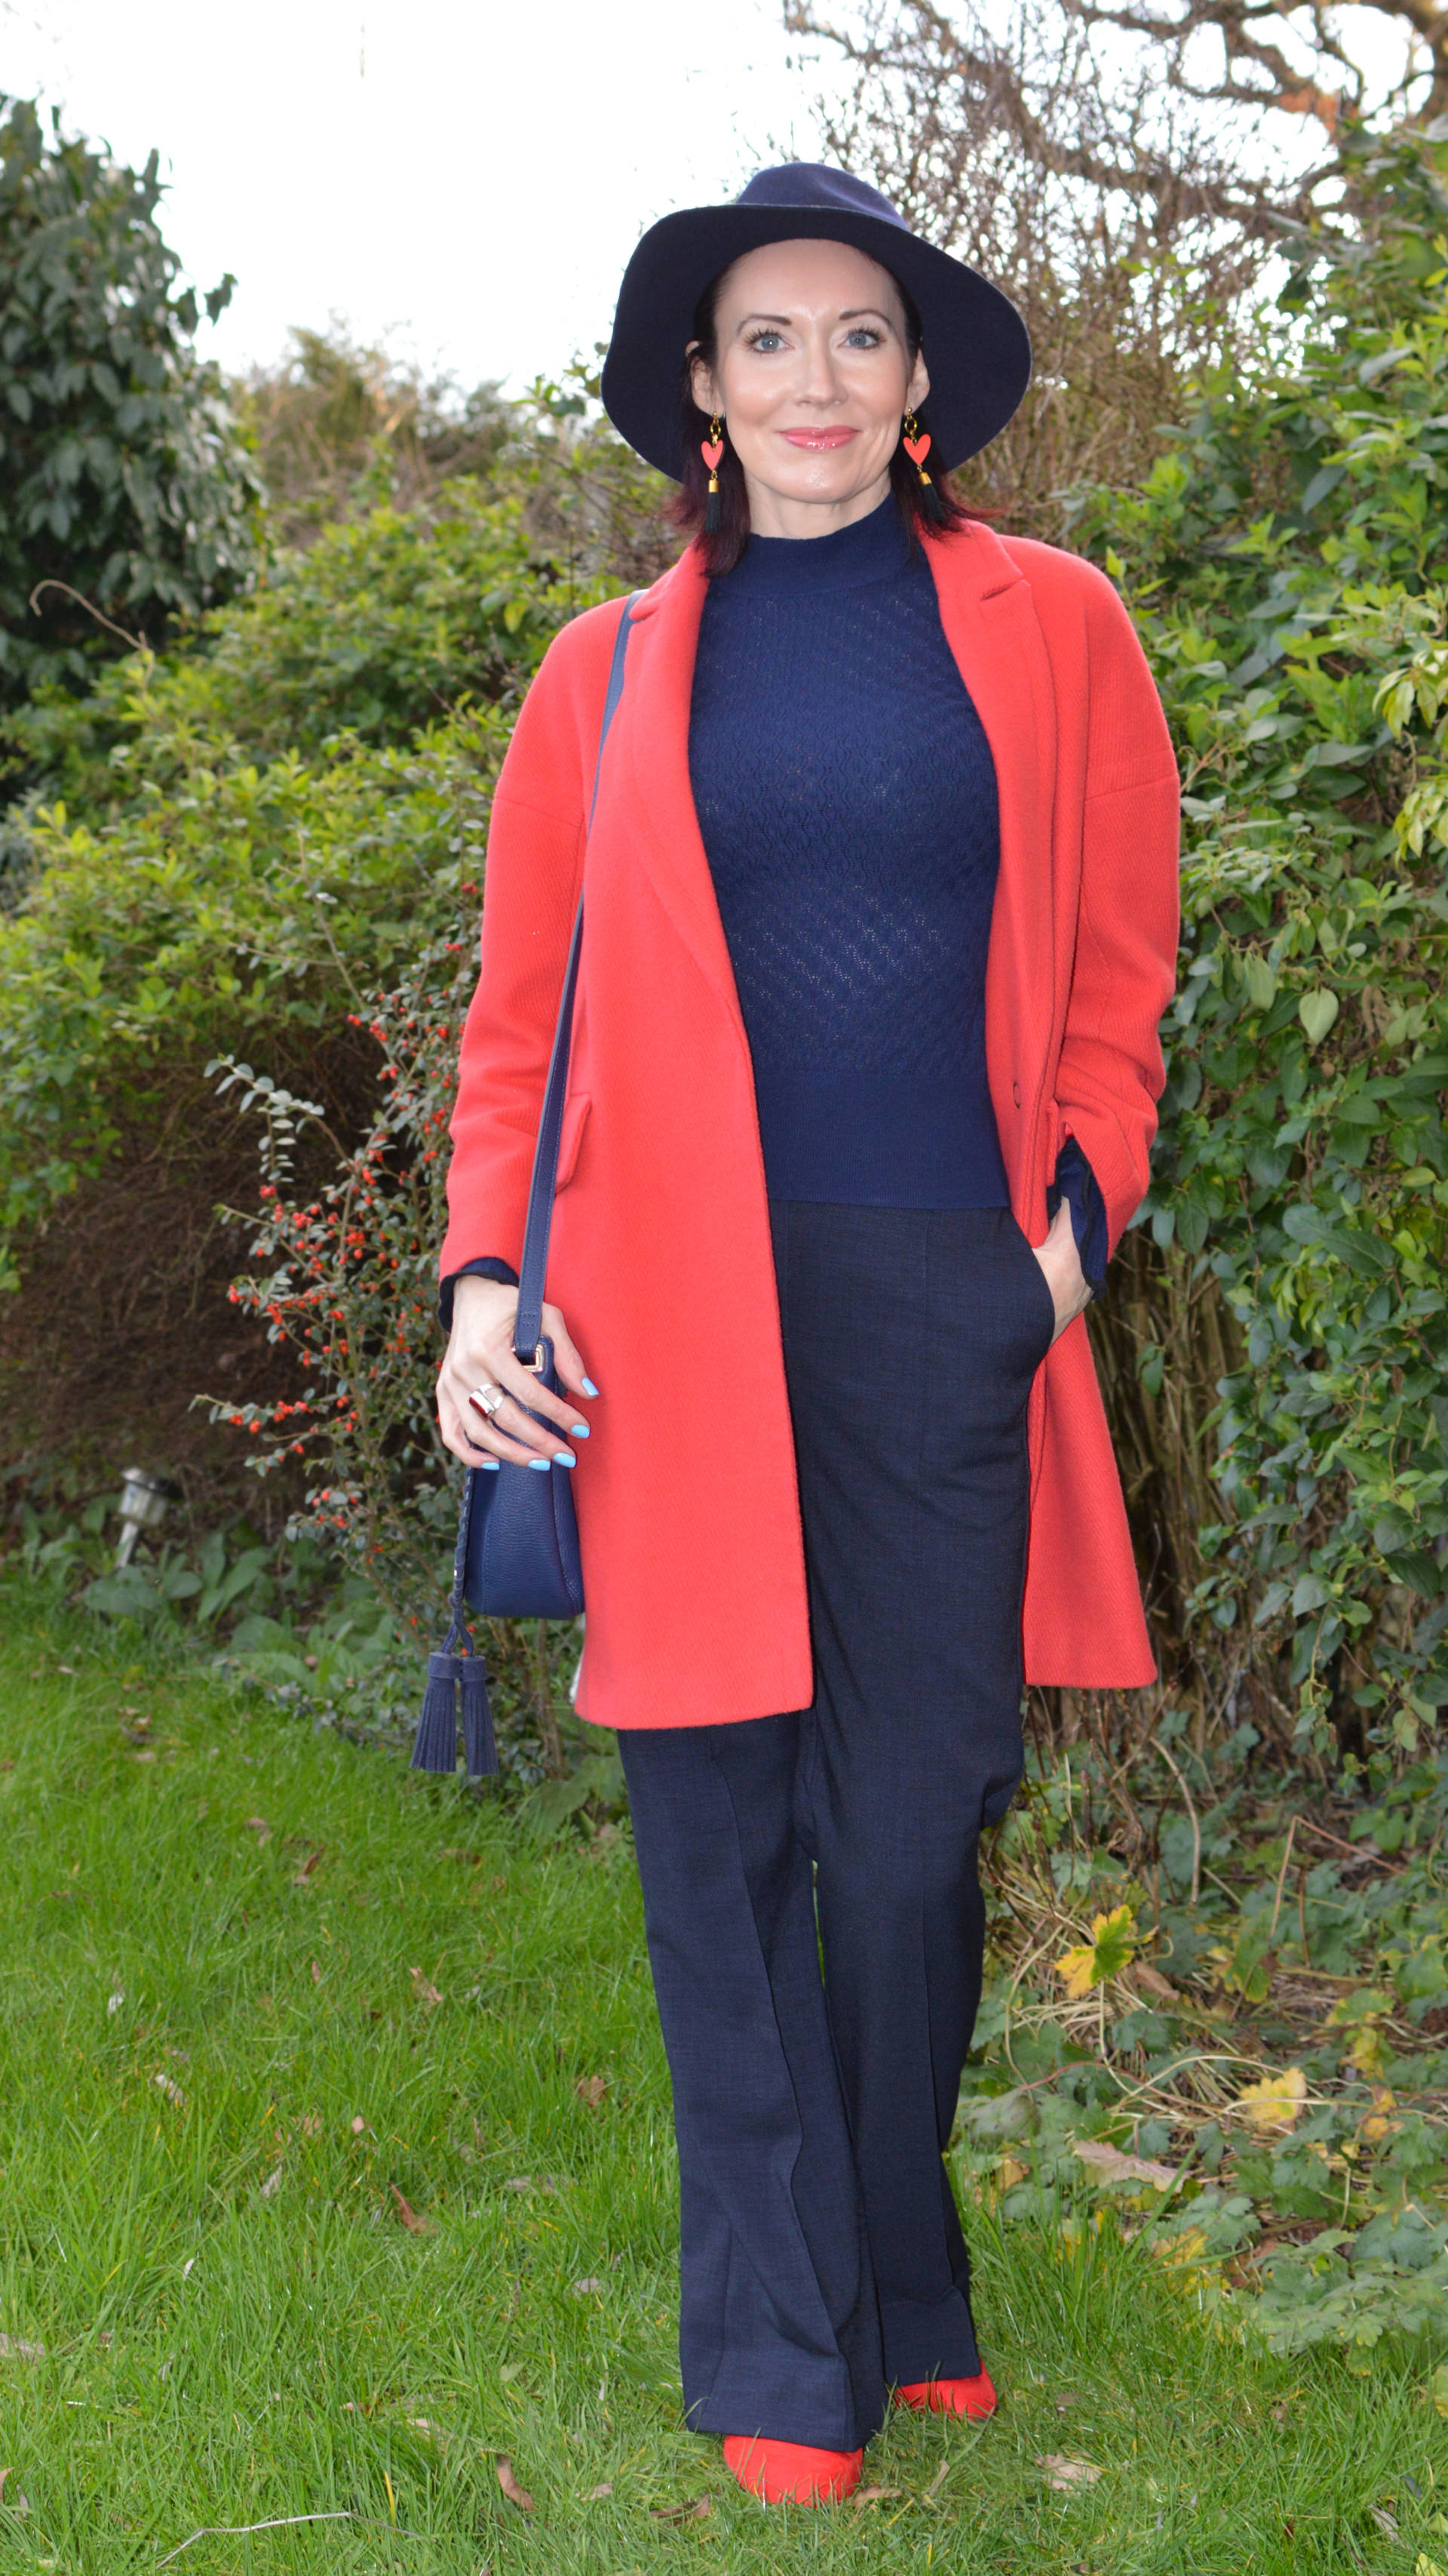 Classic navy trousers and sweater with a red coat + Style With a Smile link up